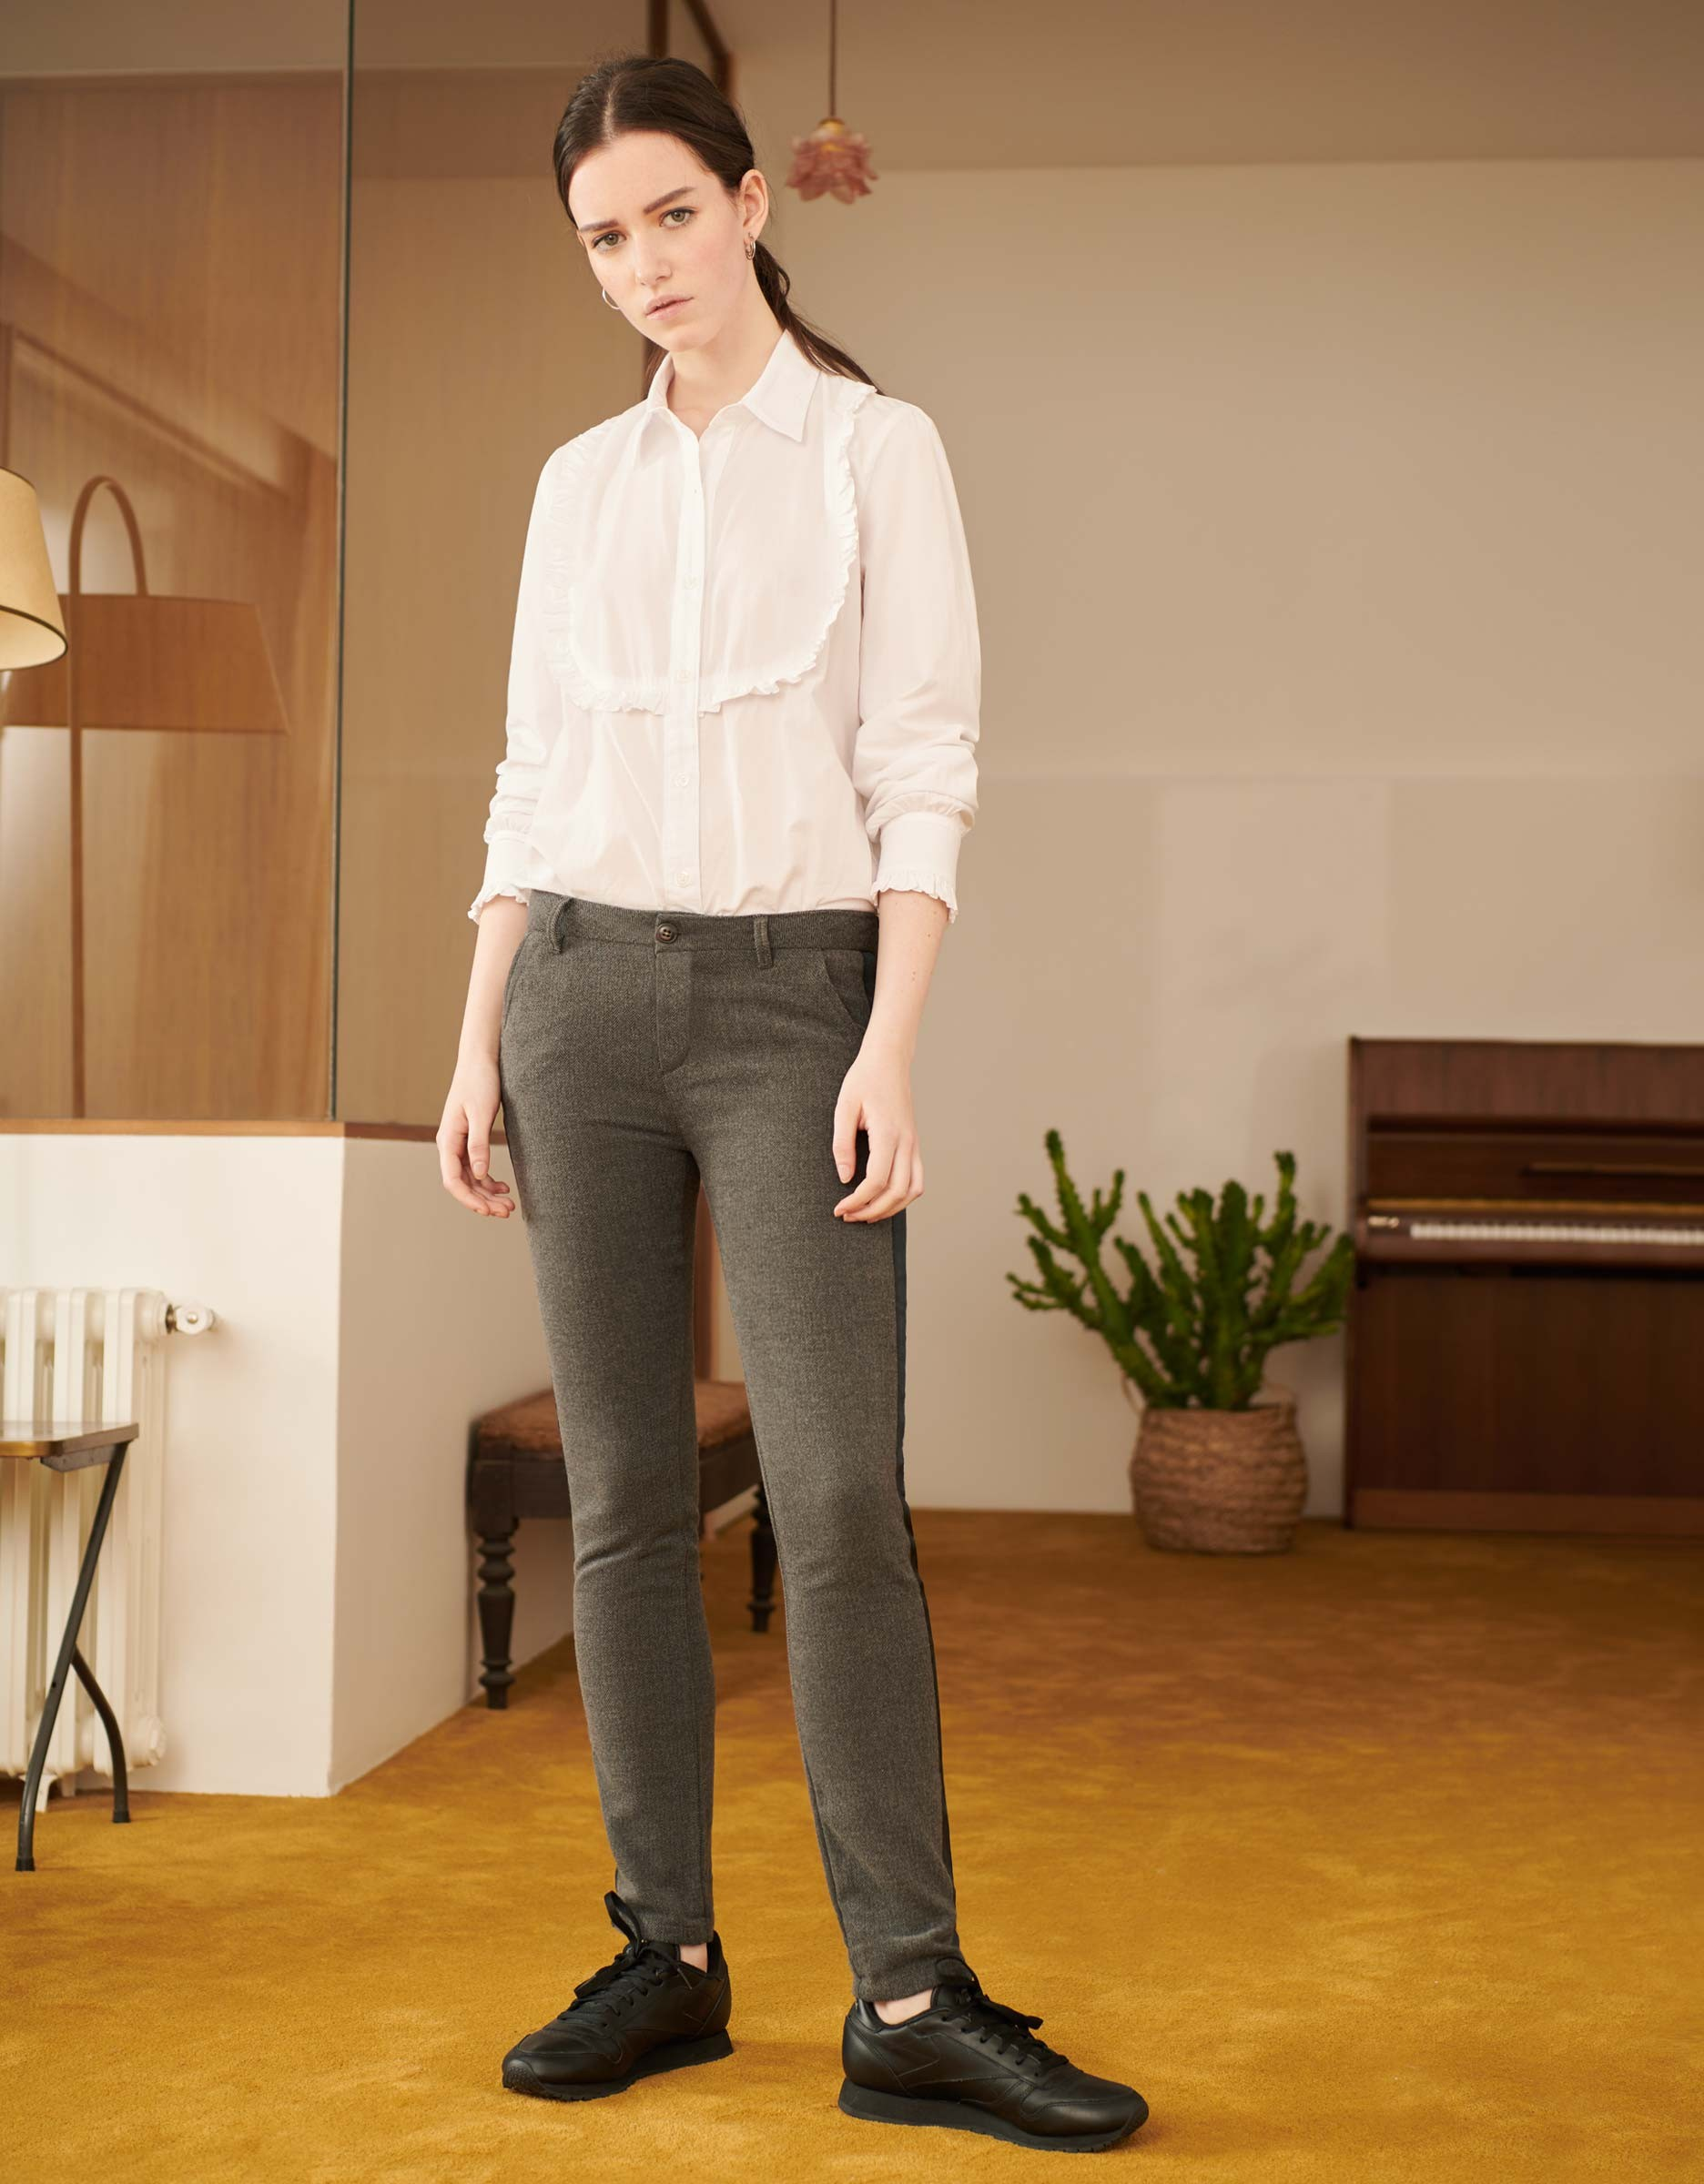 Pour Fancy Sandy Pantalon Herring Chino Grey Femme Rtvxq7 5e0d4de4471